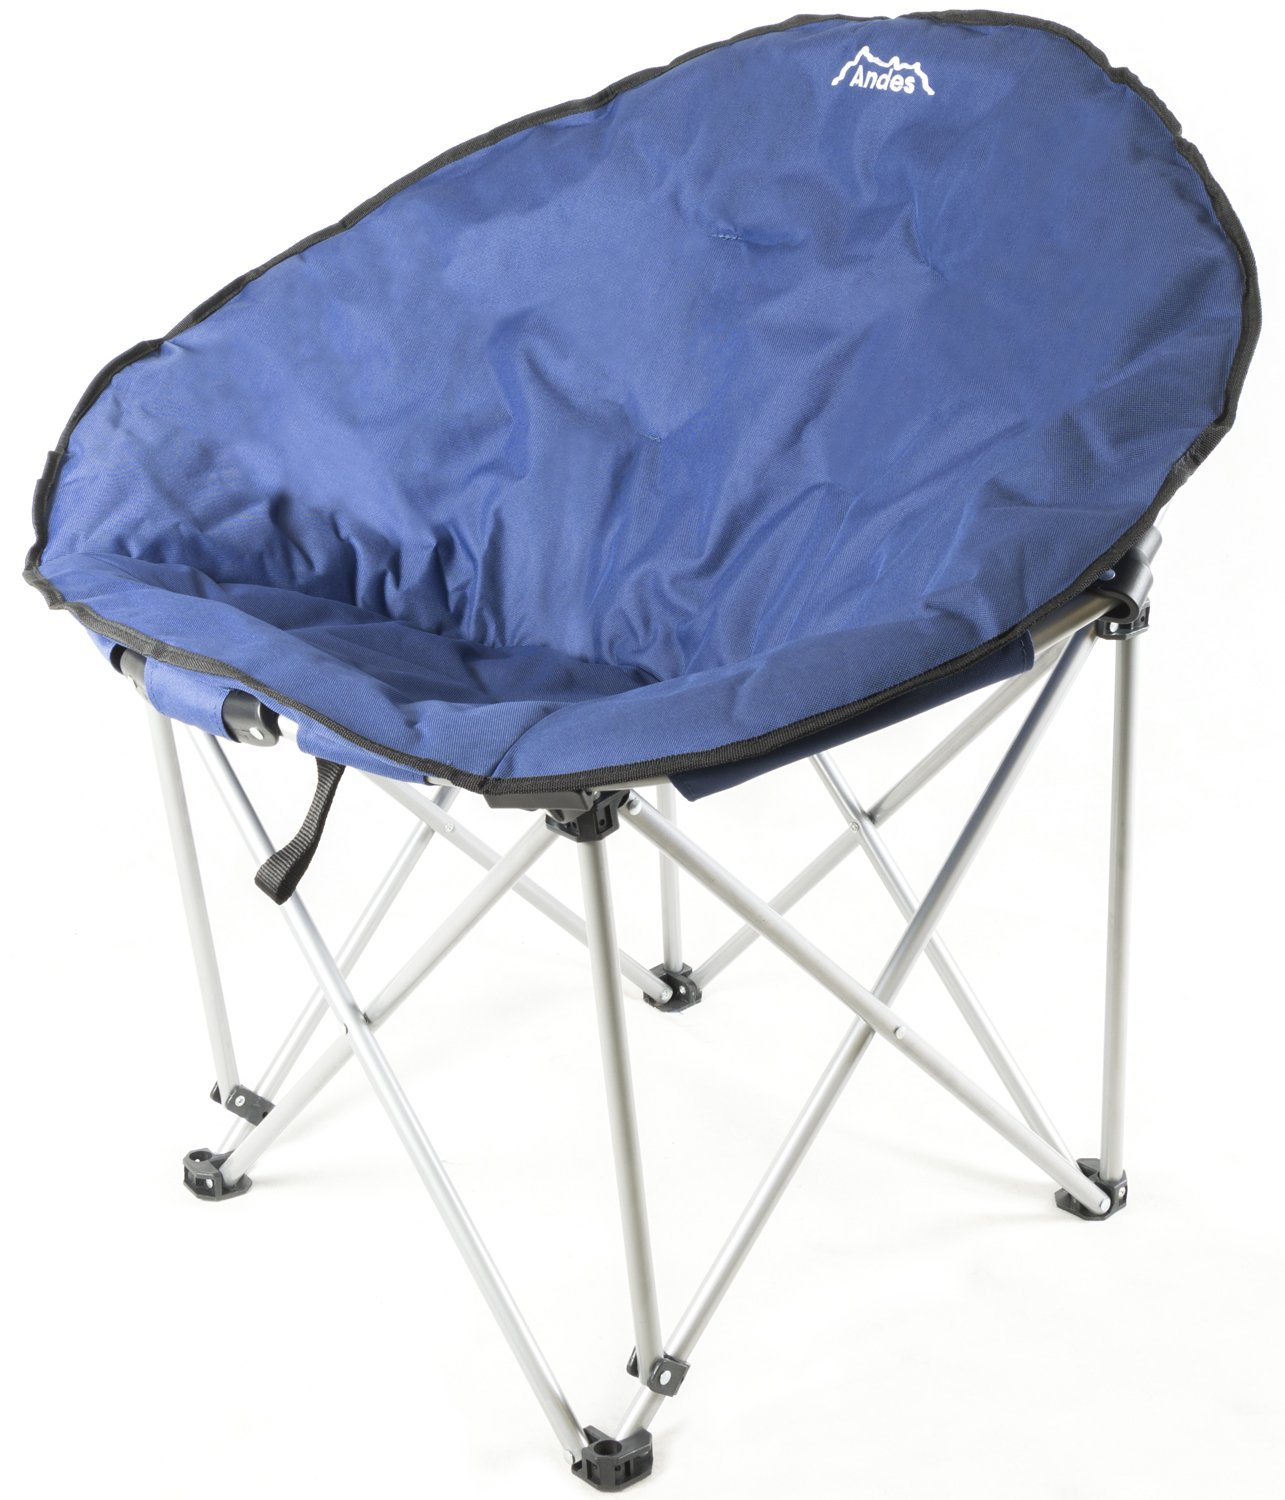 Andes Folding Camping Moon Chair Outdoor Garden Picnic Lounger